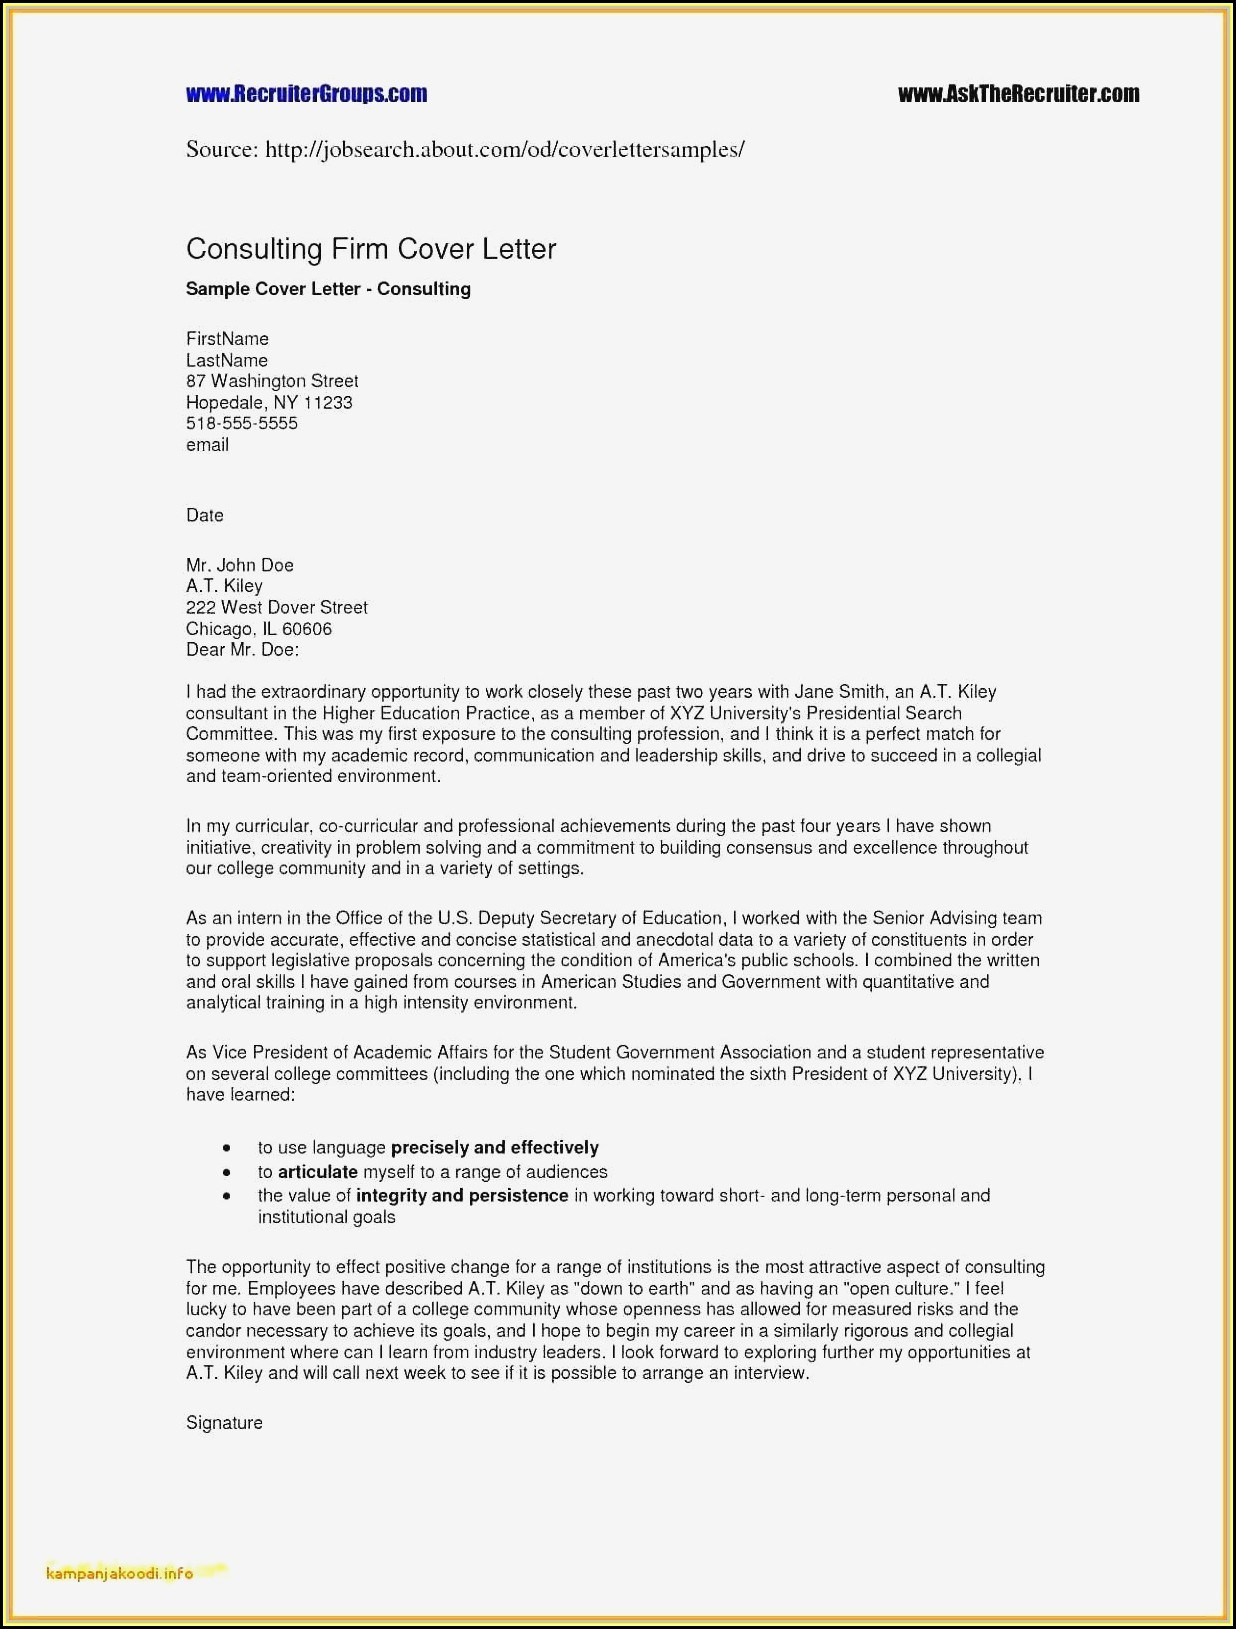 san diego resume writing service best services in writers core expertise sample civil Resume Resume Writers San Diego